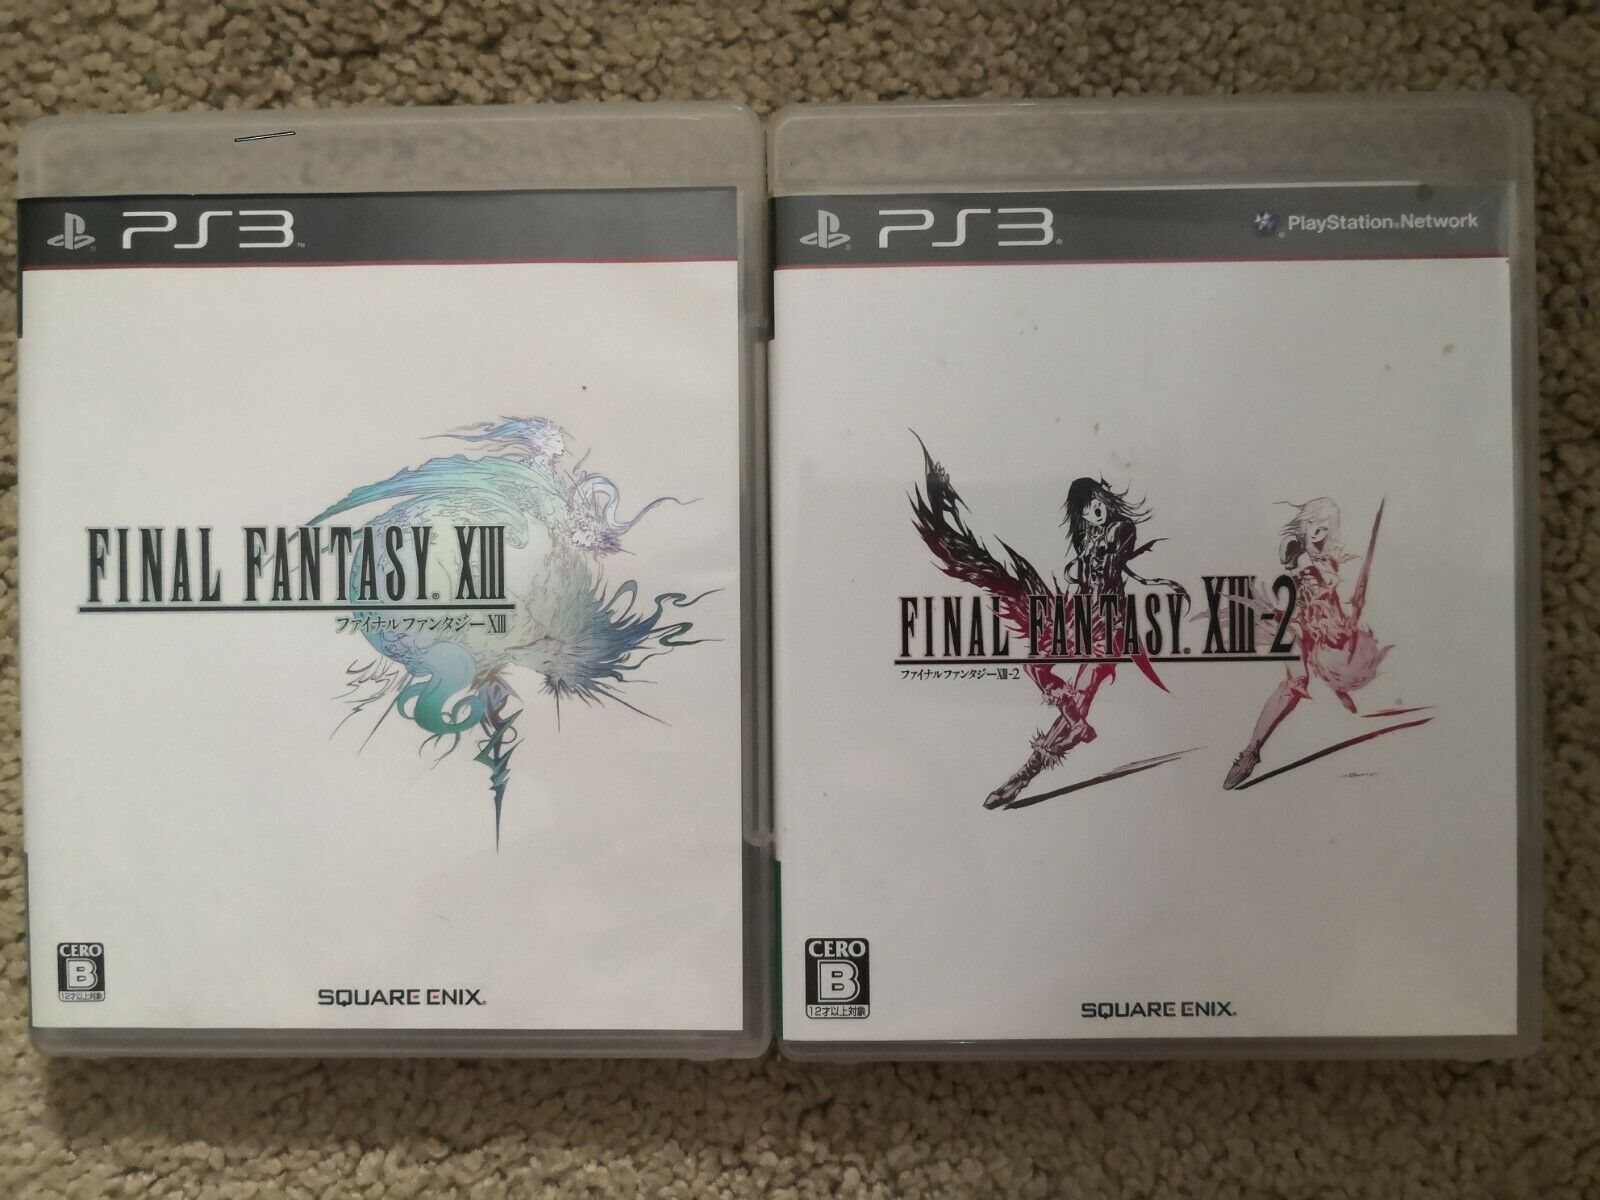 (PS 3 Import) Final Fantasy XIII & XIII-2 with rare fryer Japan